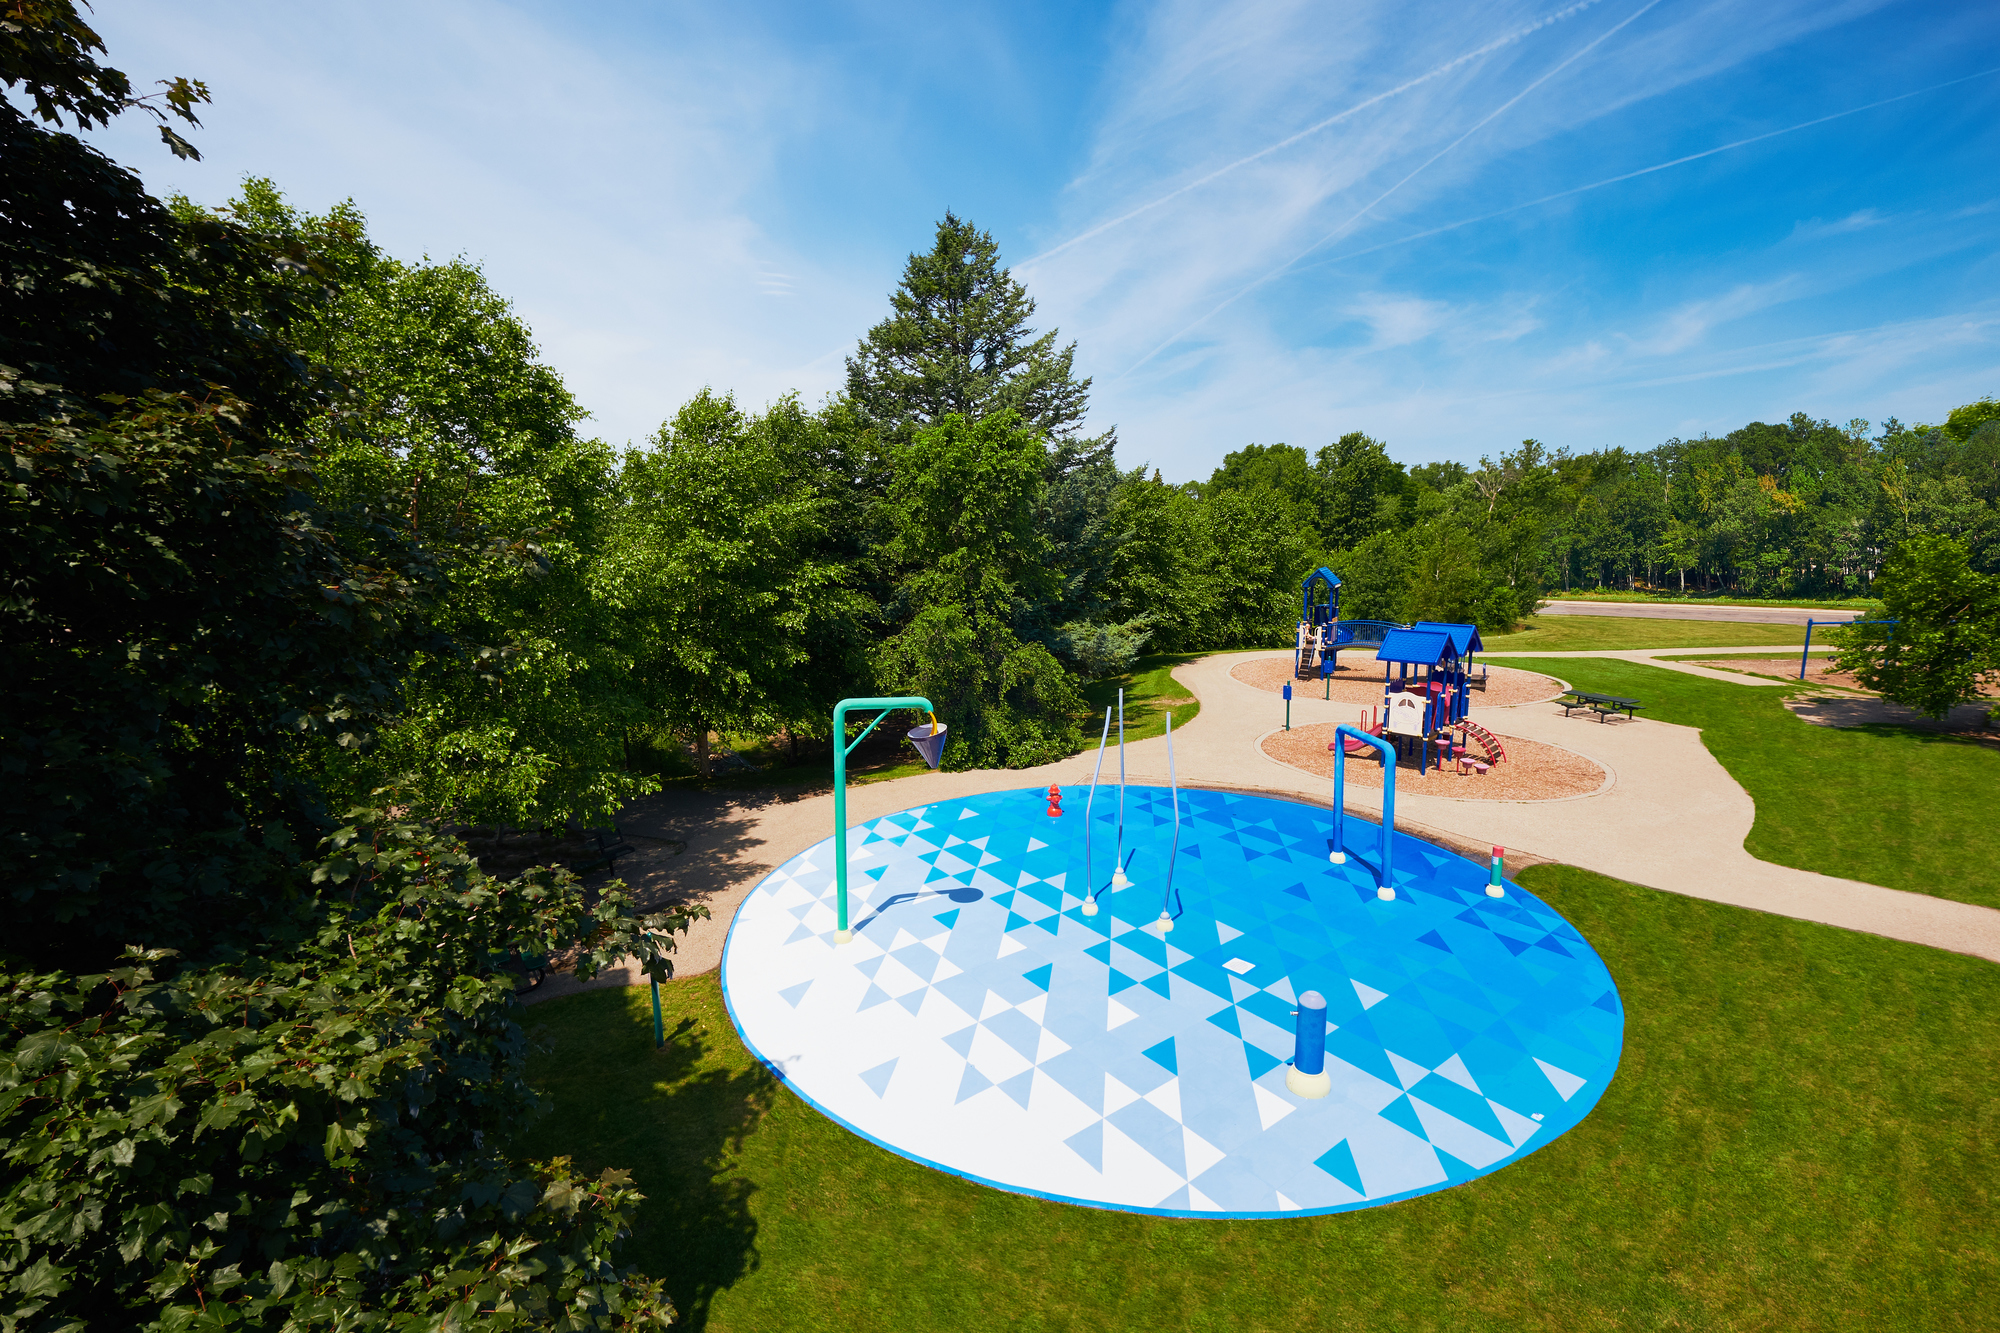 Bloomington_Splash_Pad_Retouched_RGR11468.jpg